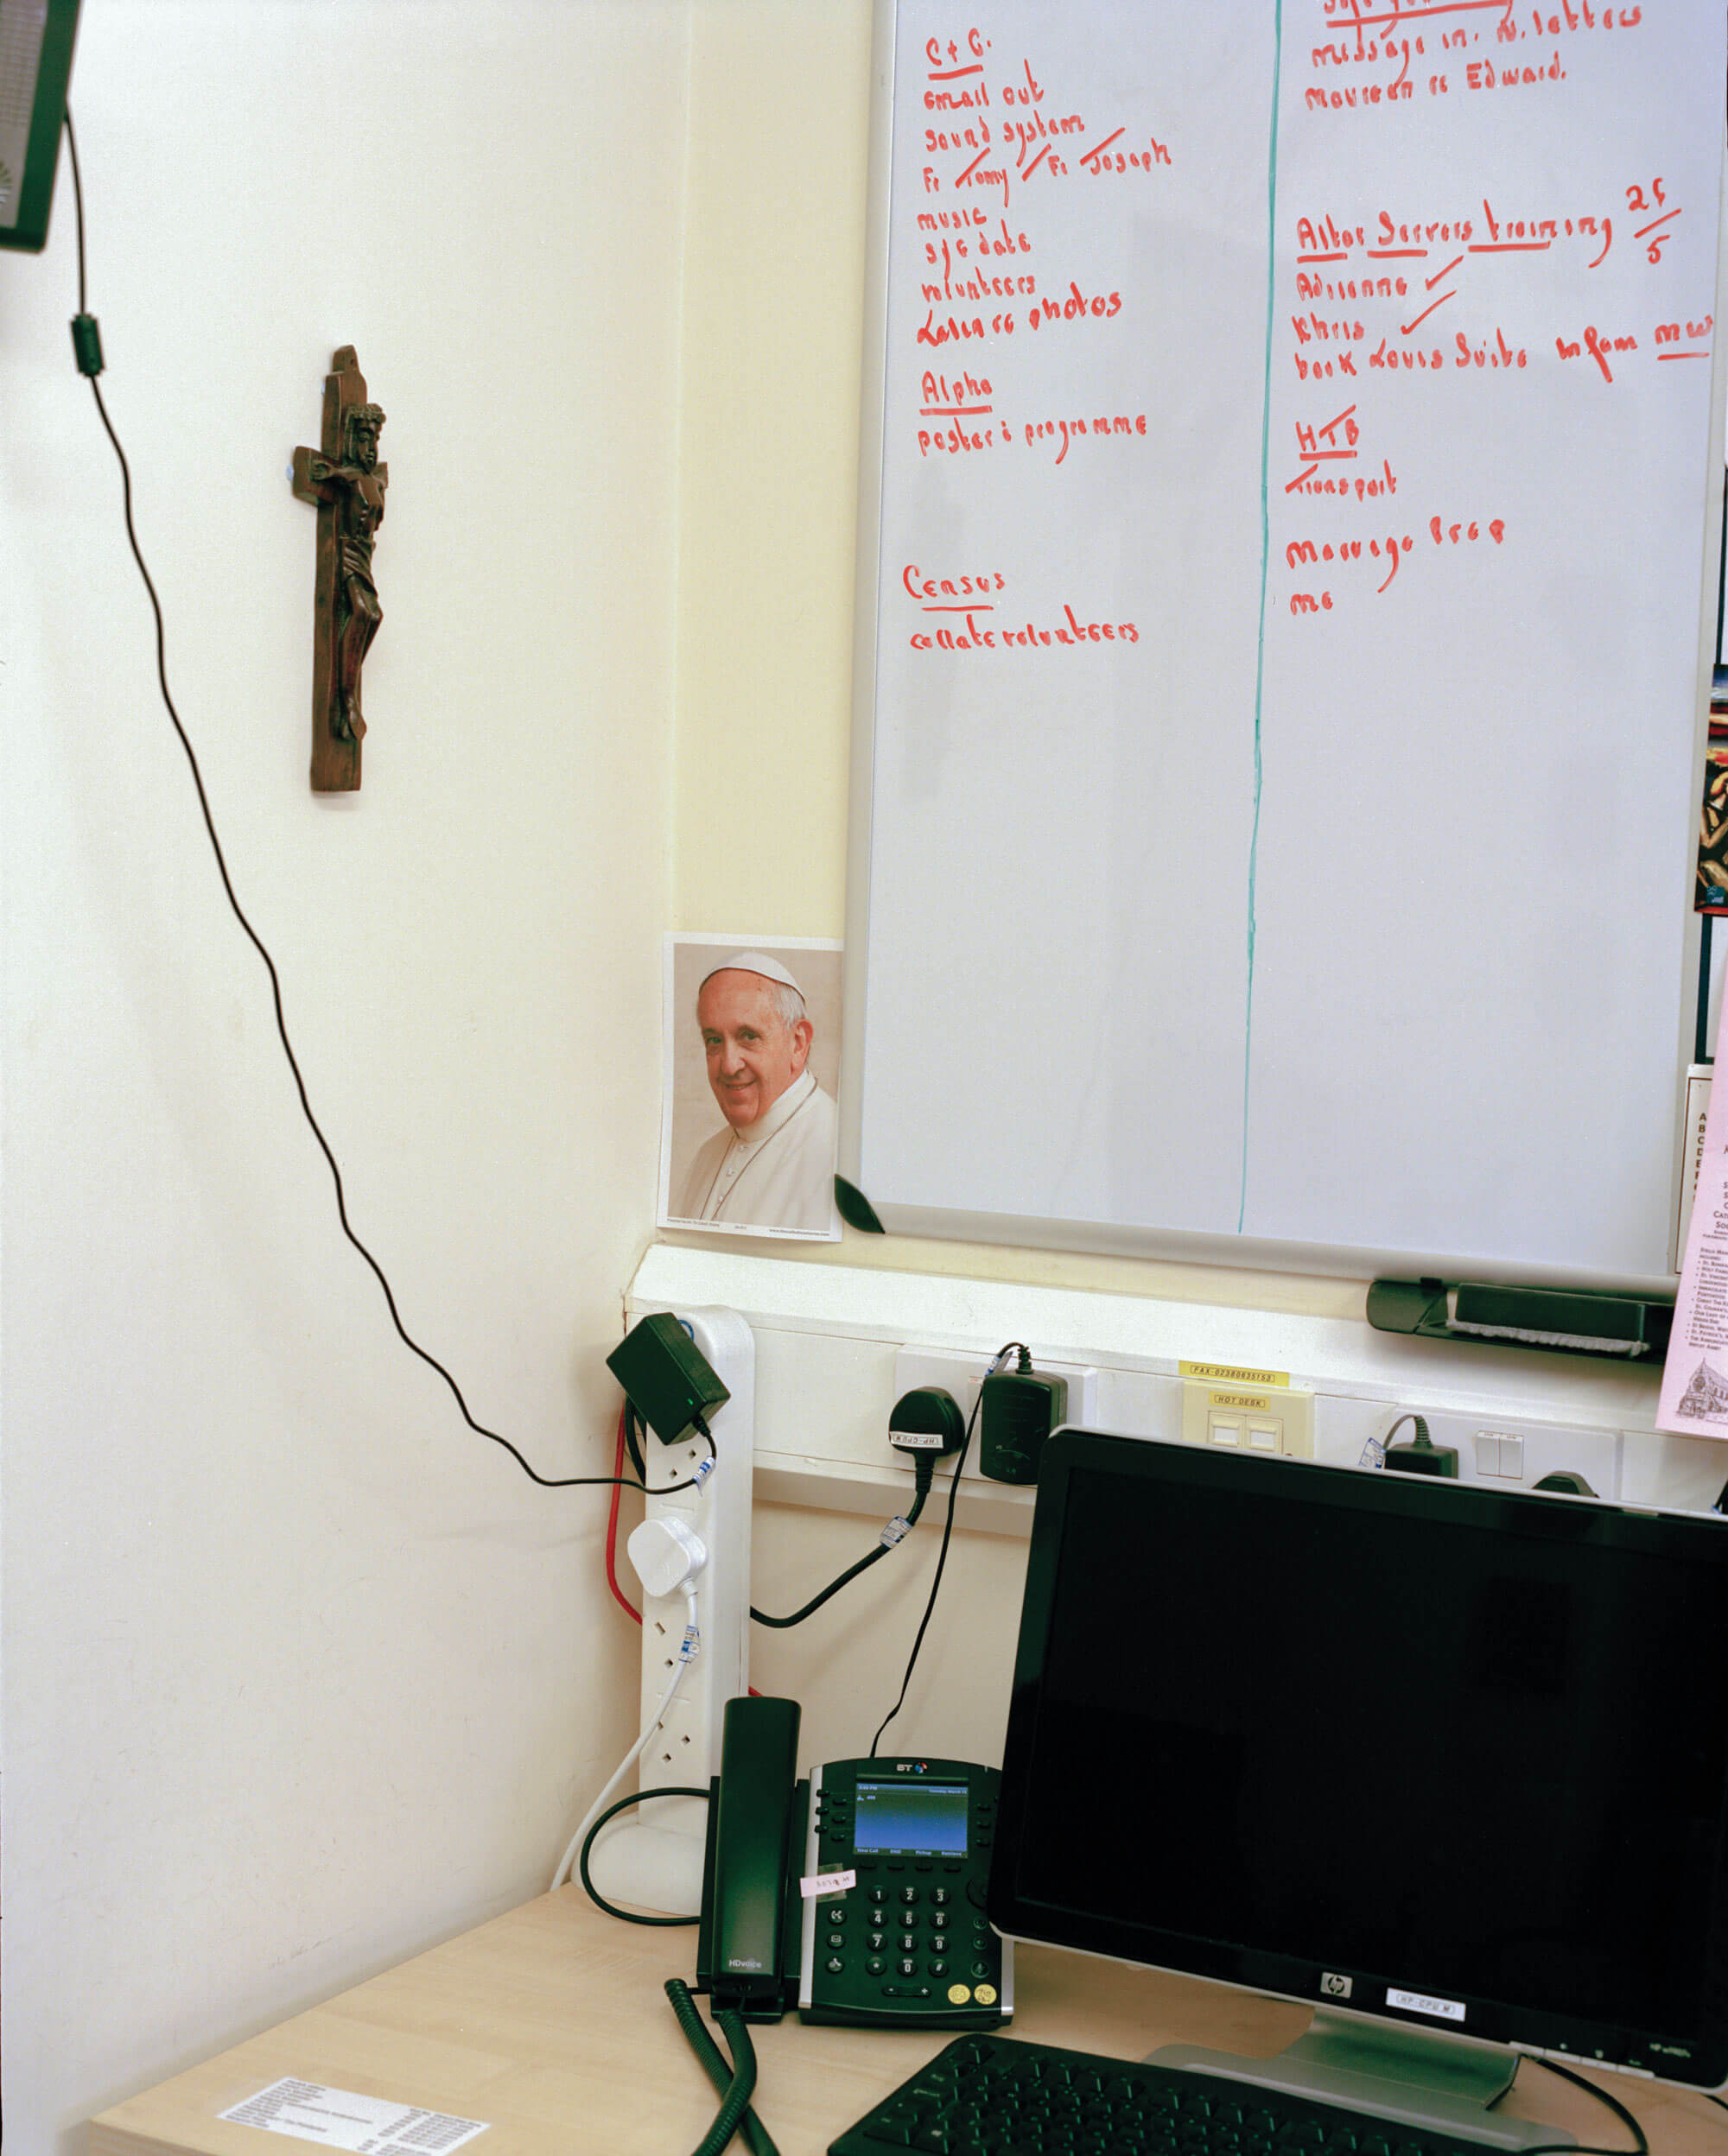 a picture of the pope sat against a whiteboard in a Catholic Church by matt Scott